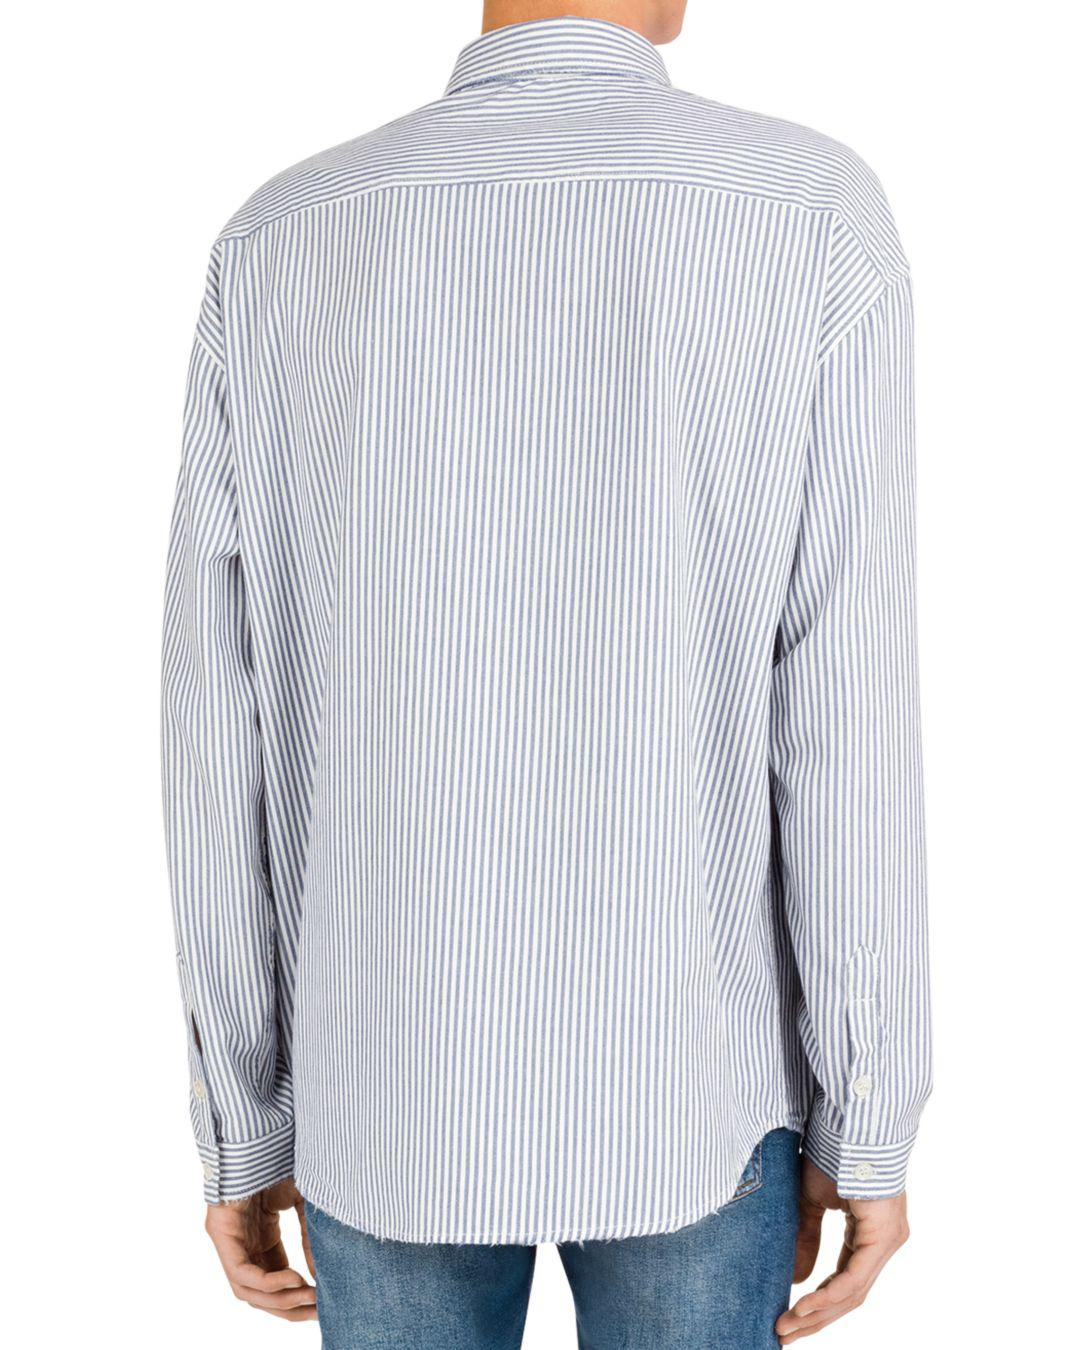 fa4877f88c9 Lyst - The Kooples Striped Distressed Denim Regular Fit Button-down Shirt  in Blue for Men